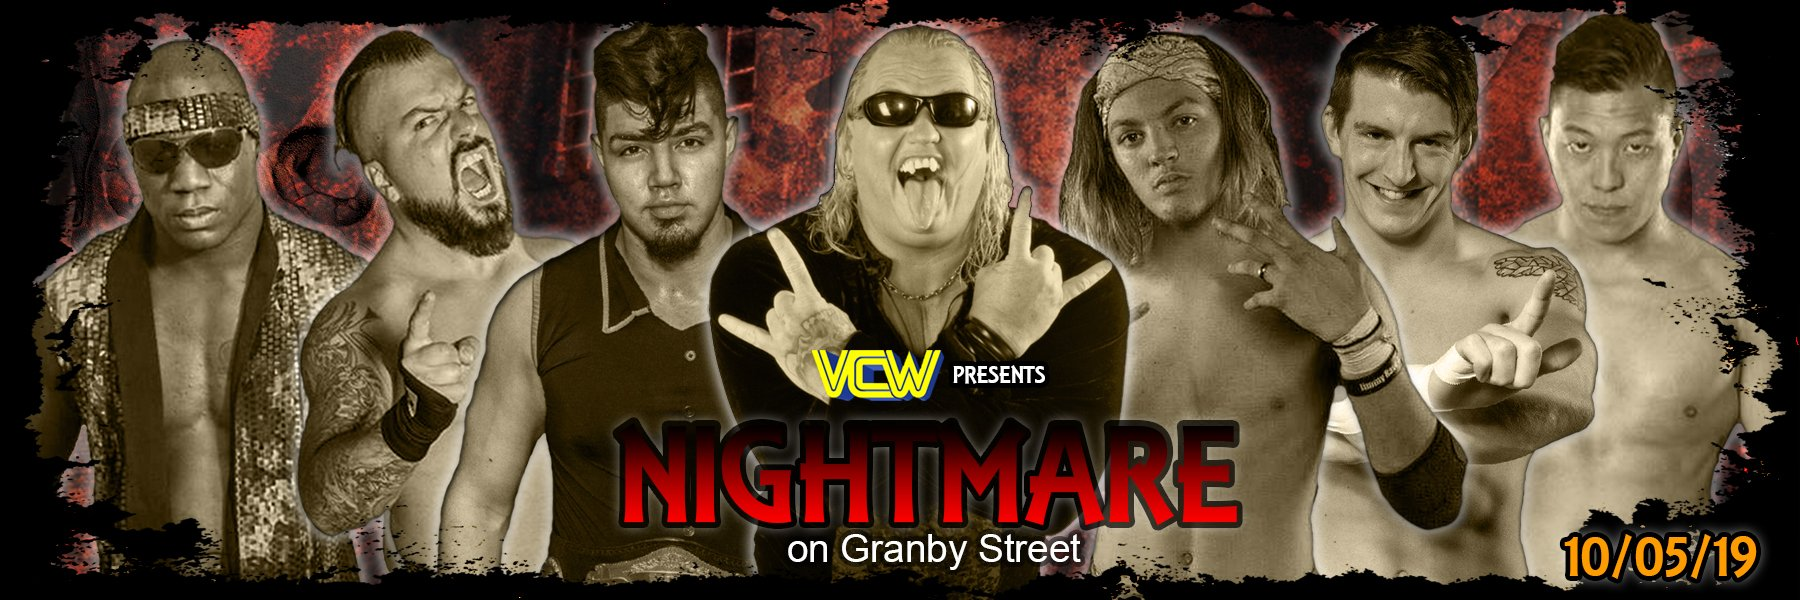 """VCW """"Nightmare on Granby Street"""" 2019"""